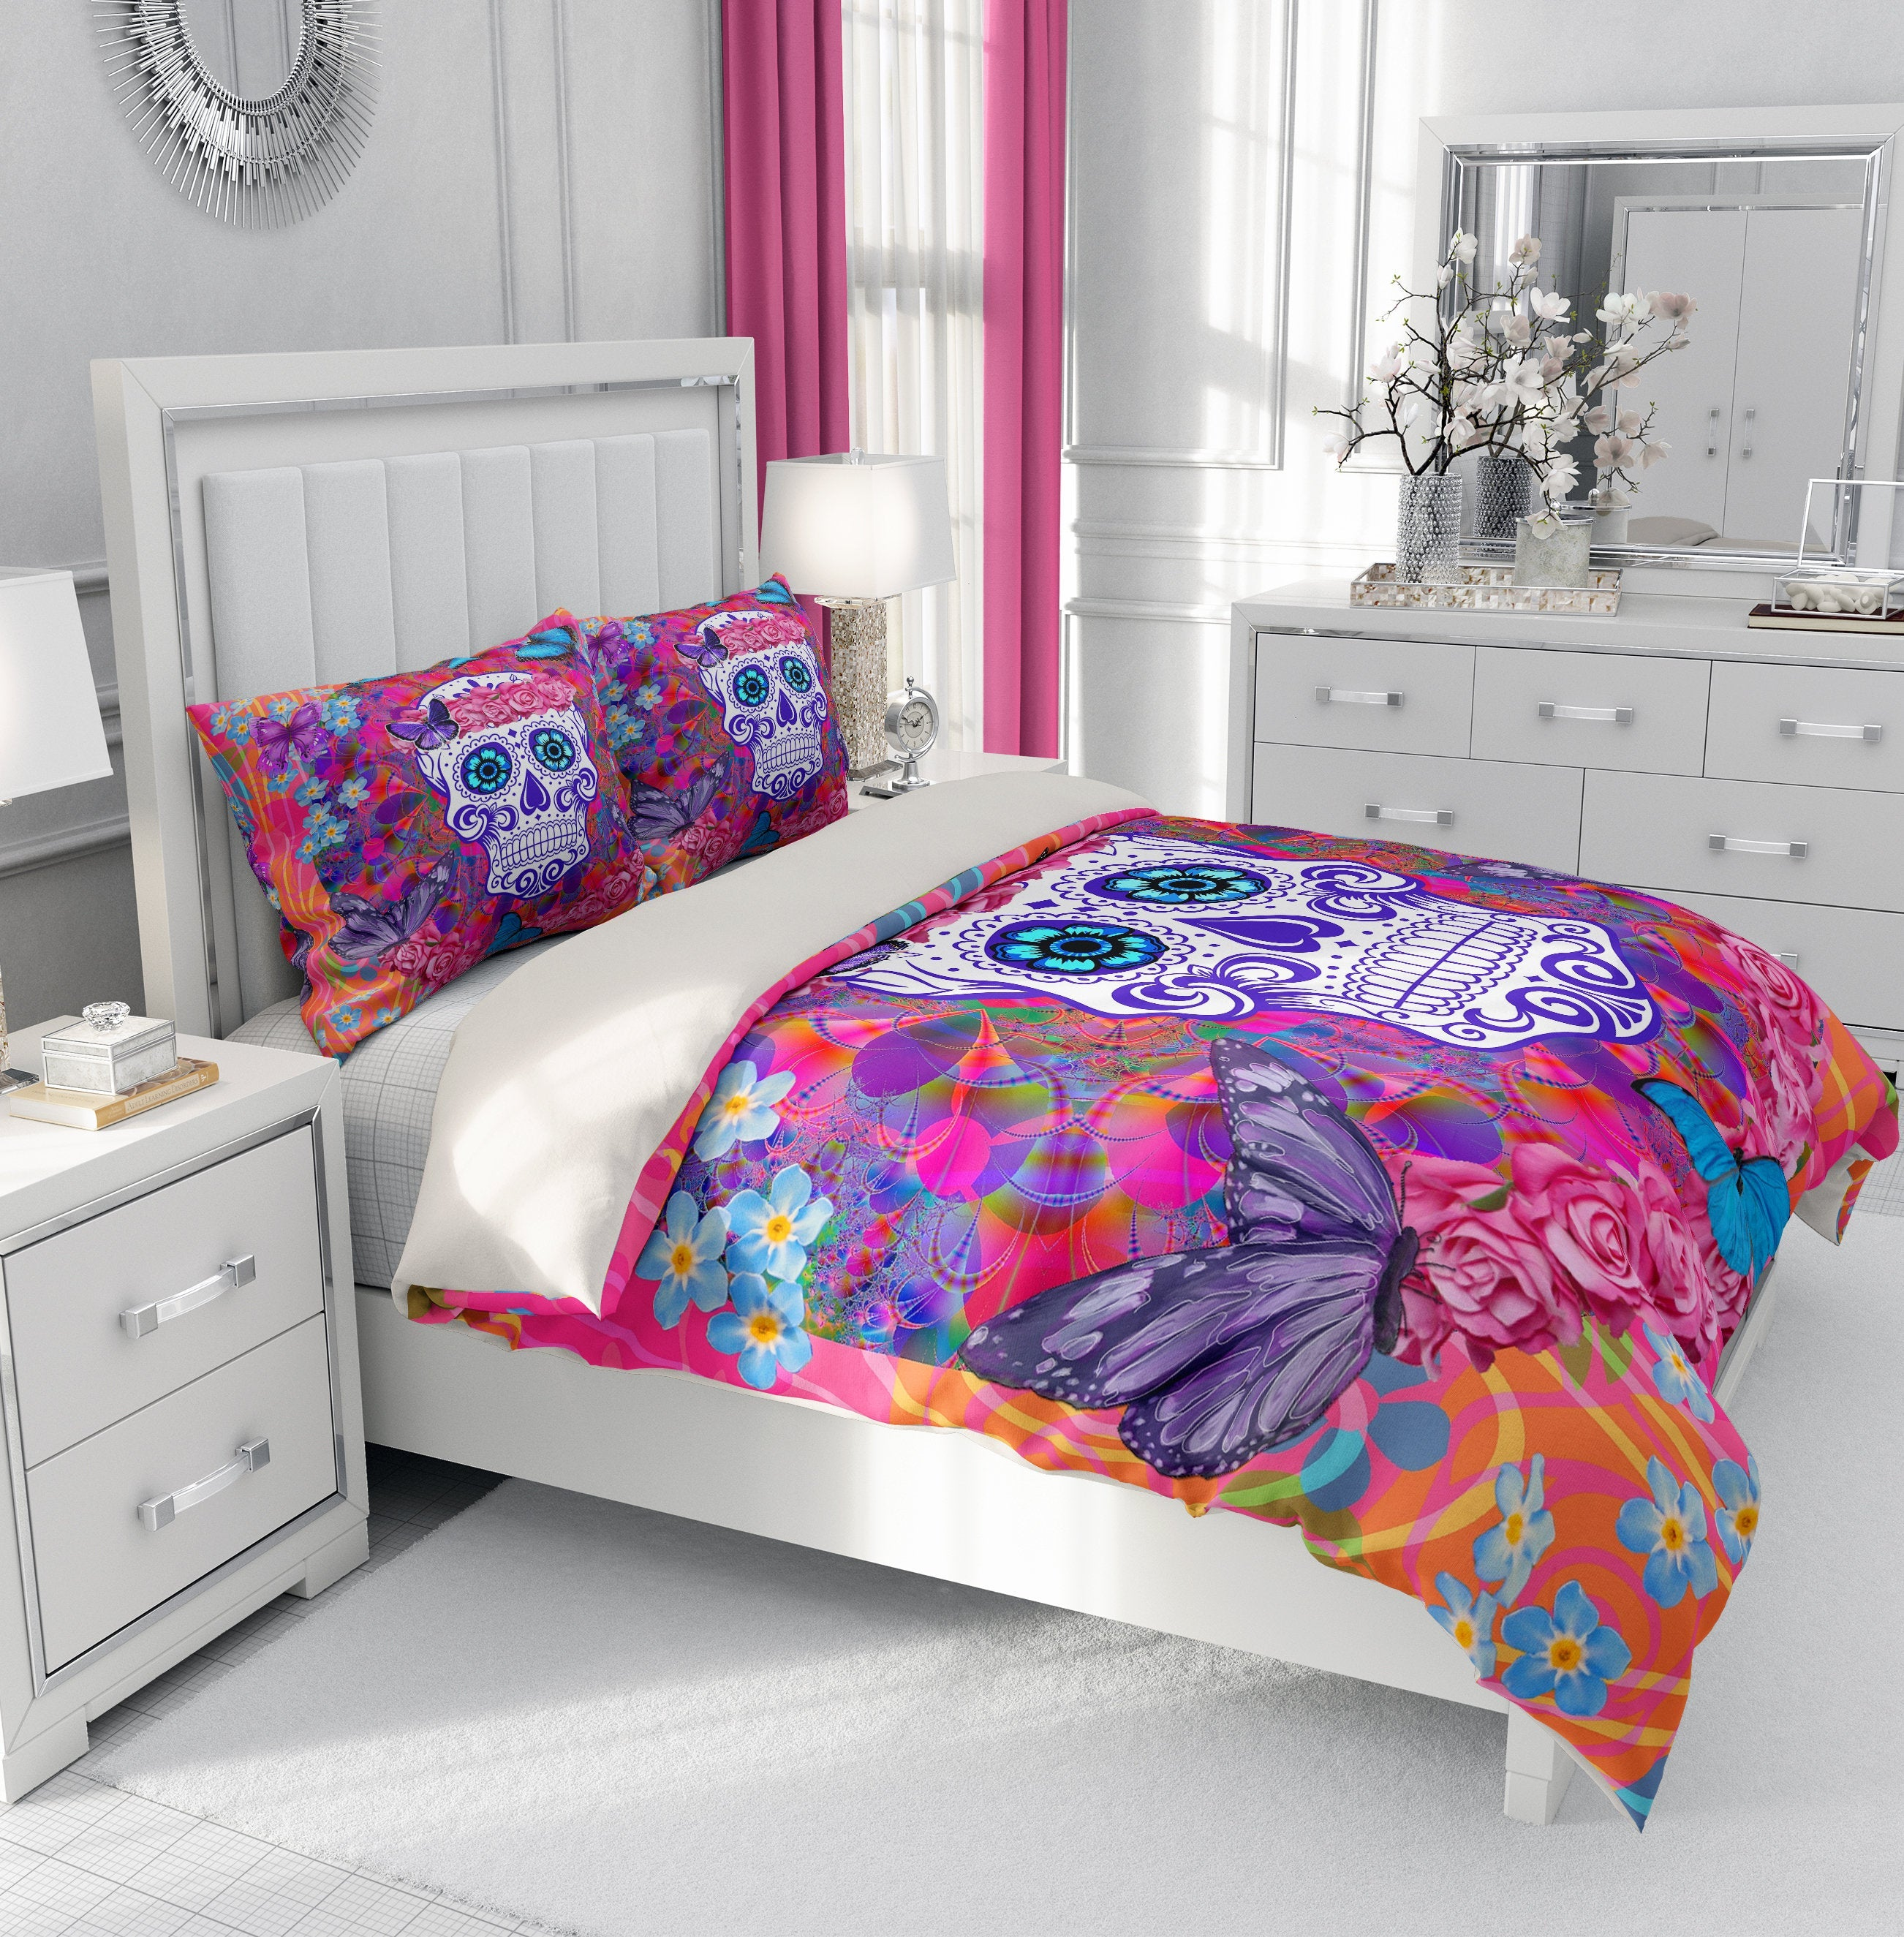 Miss Candace Sugar Skull Comforter or Duvet Cover Bedroom Set